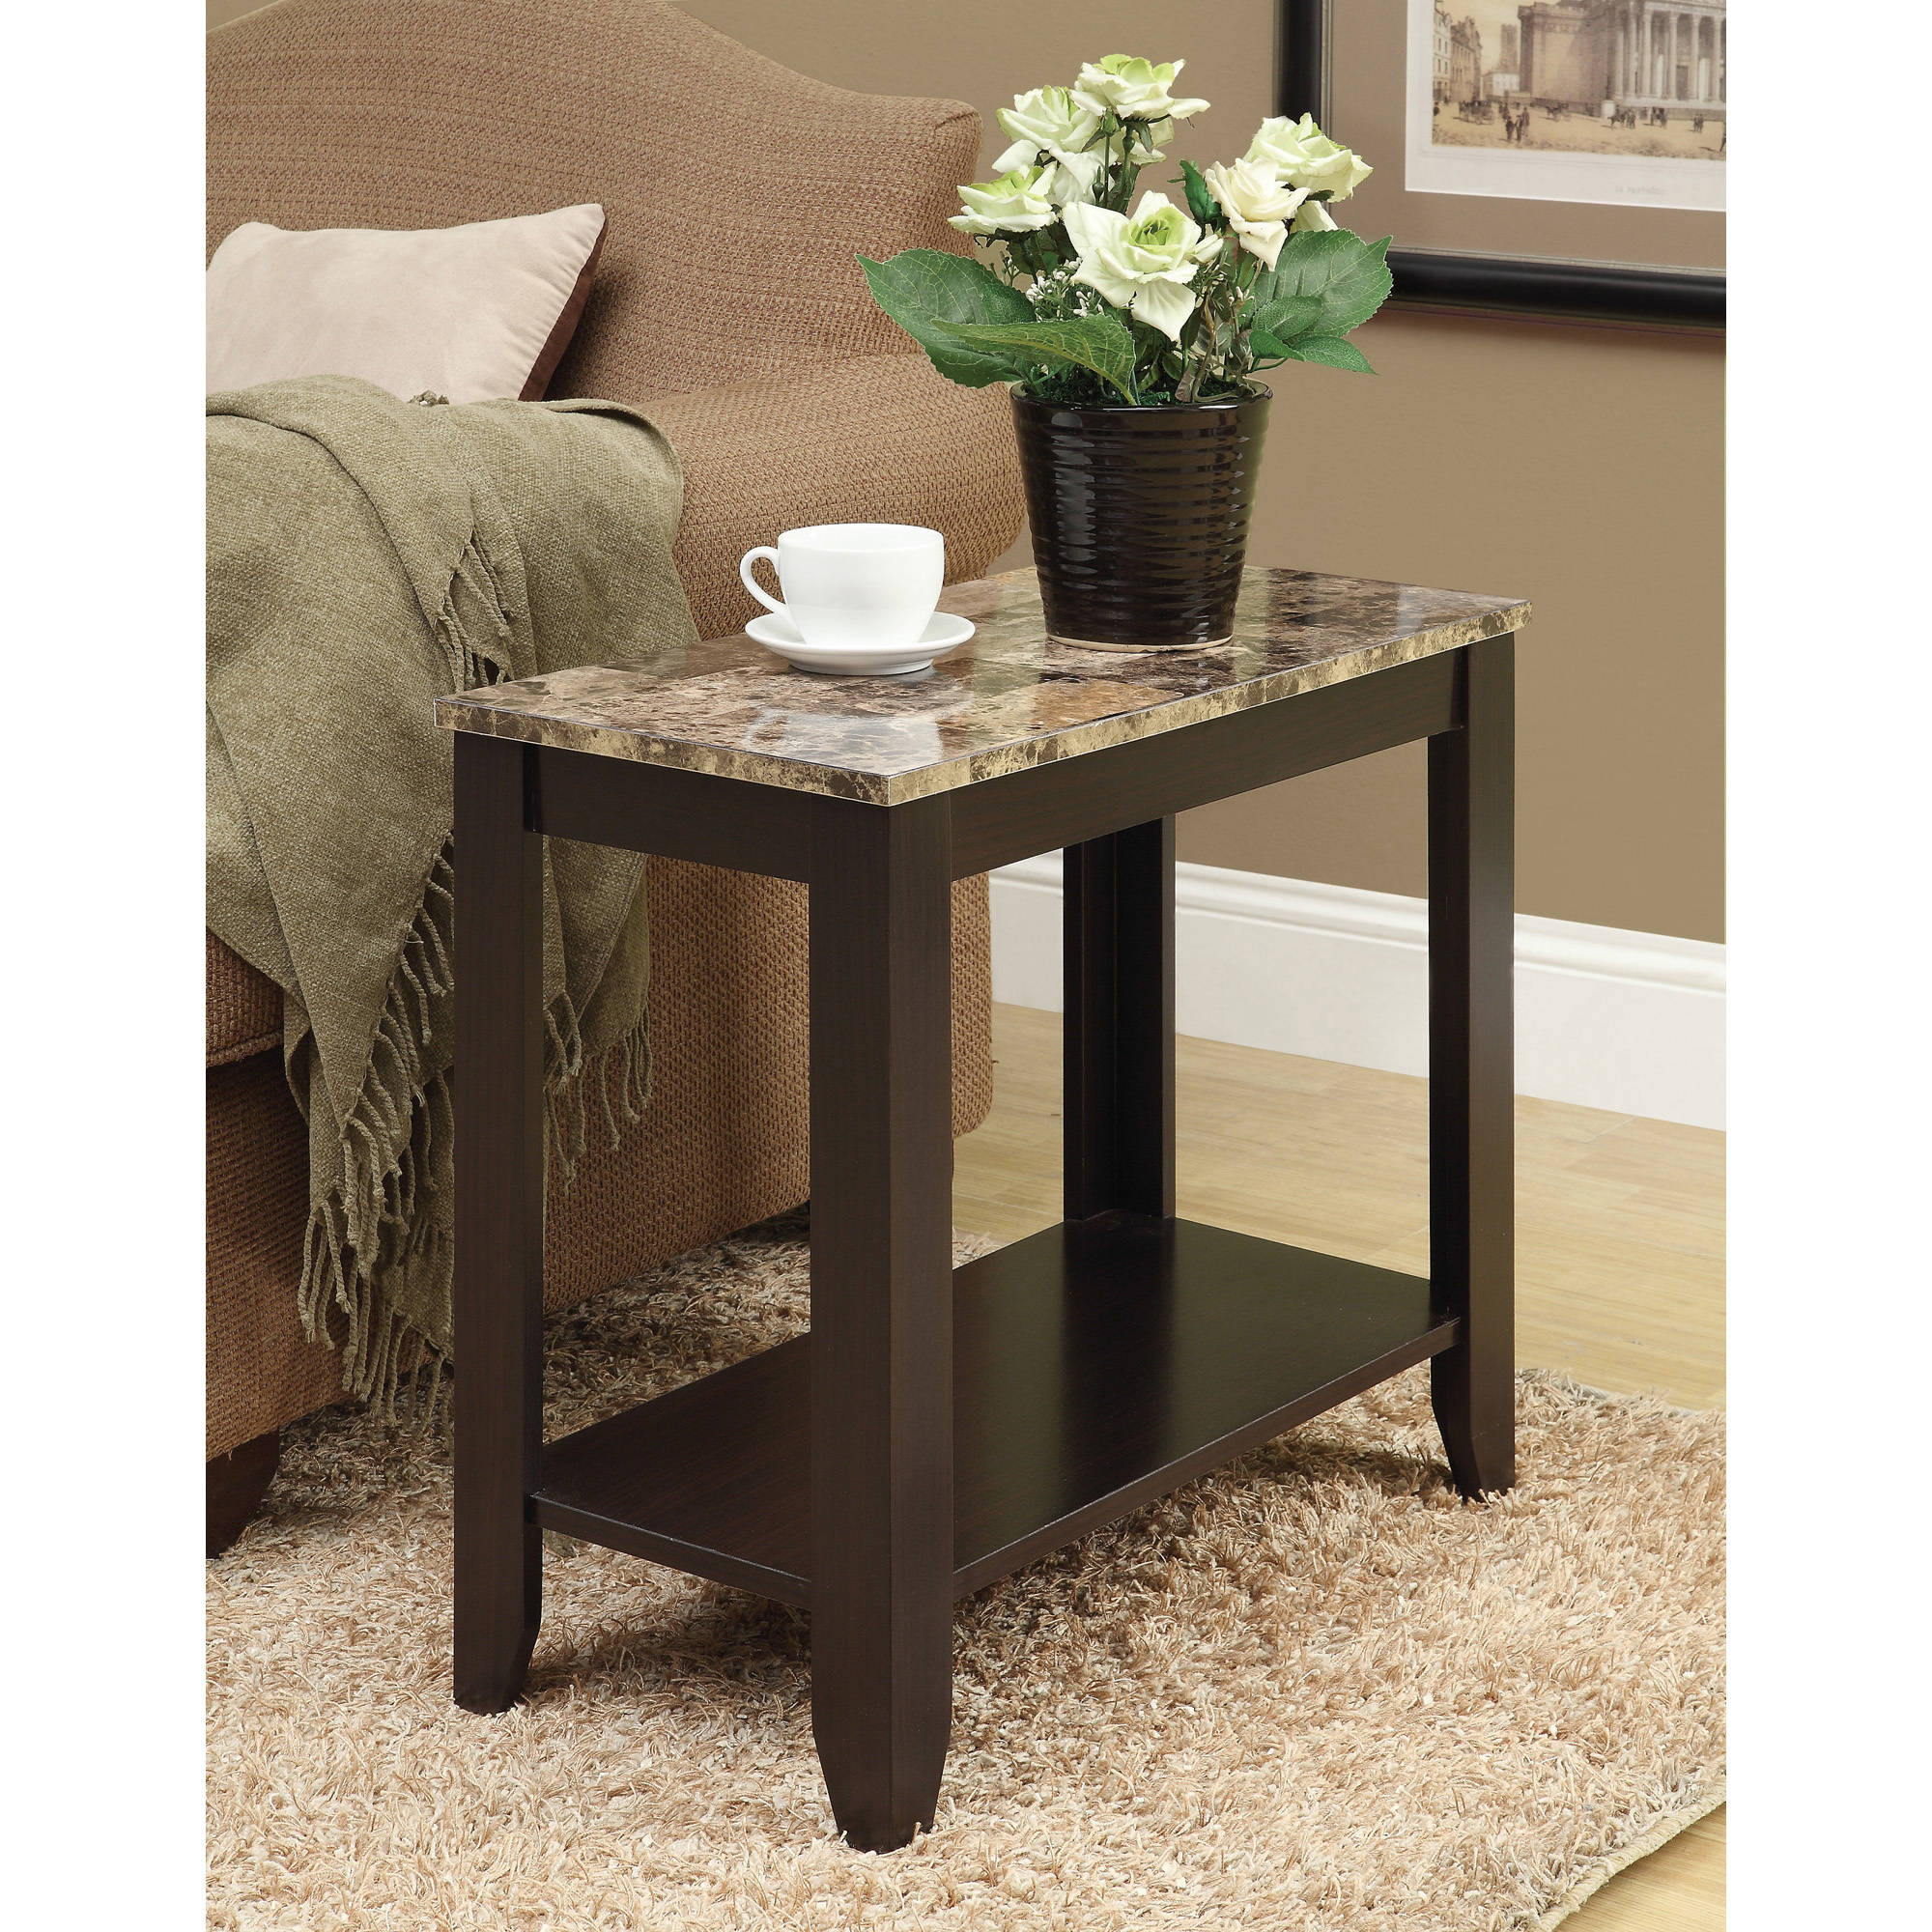 fitueyes grey glass end table accent side coffee gold bedroom furn monarch cappuccino marble top rustic chrome french black tables modern trunk round tablestarget target full size